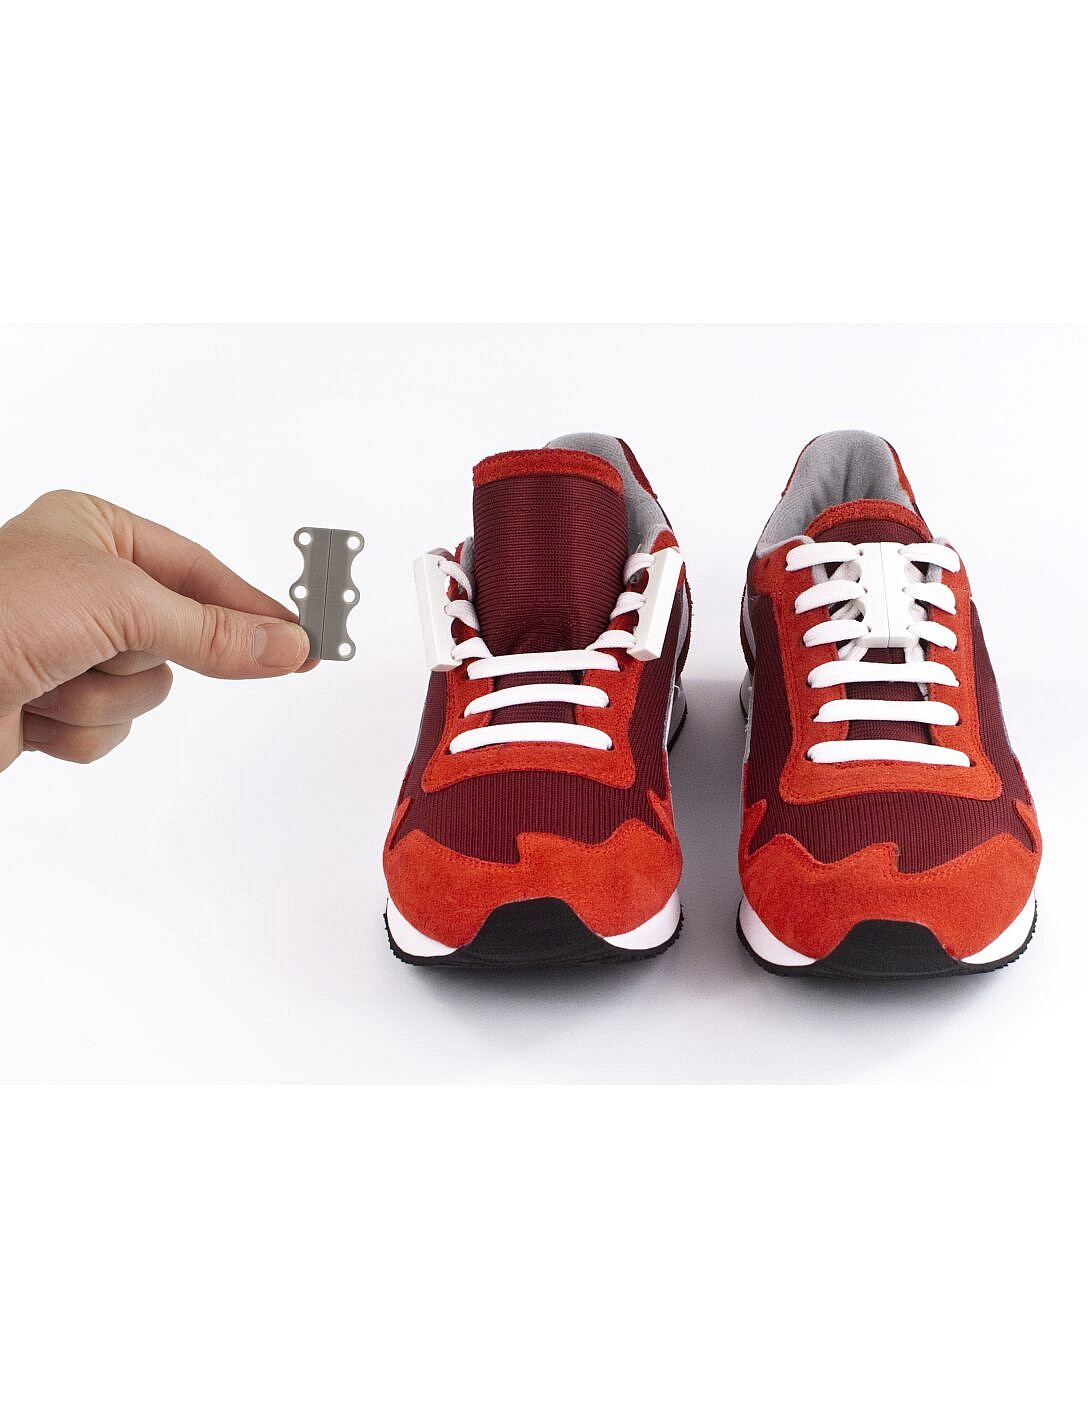 Red Shoes Hand.psd pdf